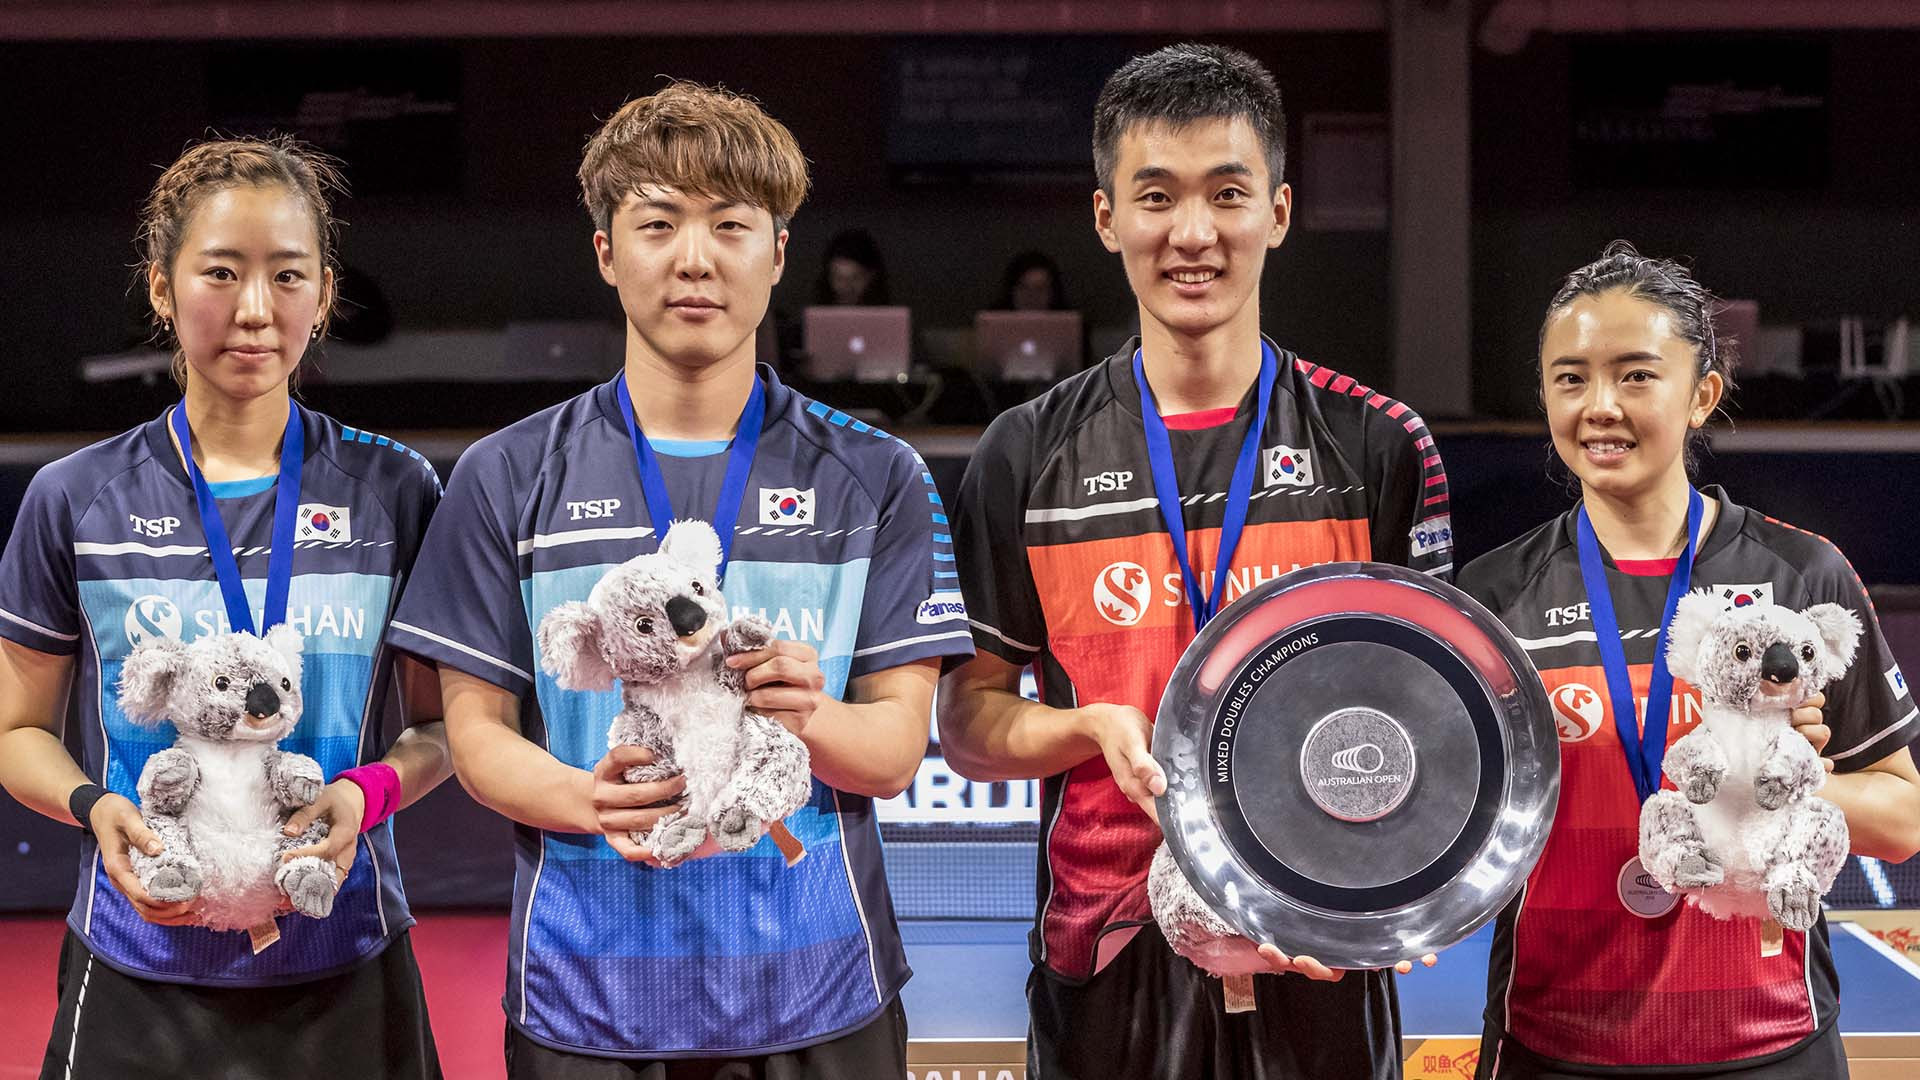 Top seeds Lee Sang-su and Jeon Ji-hee fought back from a game down to beat compatriots Lim Jong-hoon and Yang Hae-un to secure the mixed doubles title at the ITTF Australian Open ©ITTF/APAC Sport Media